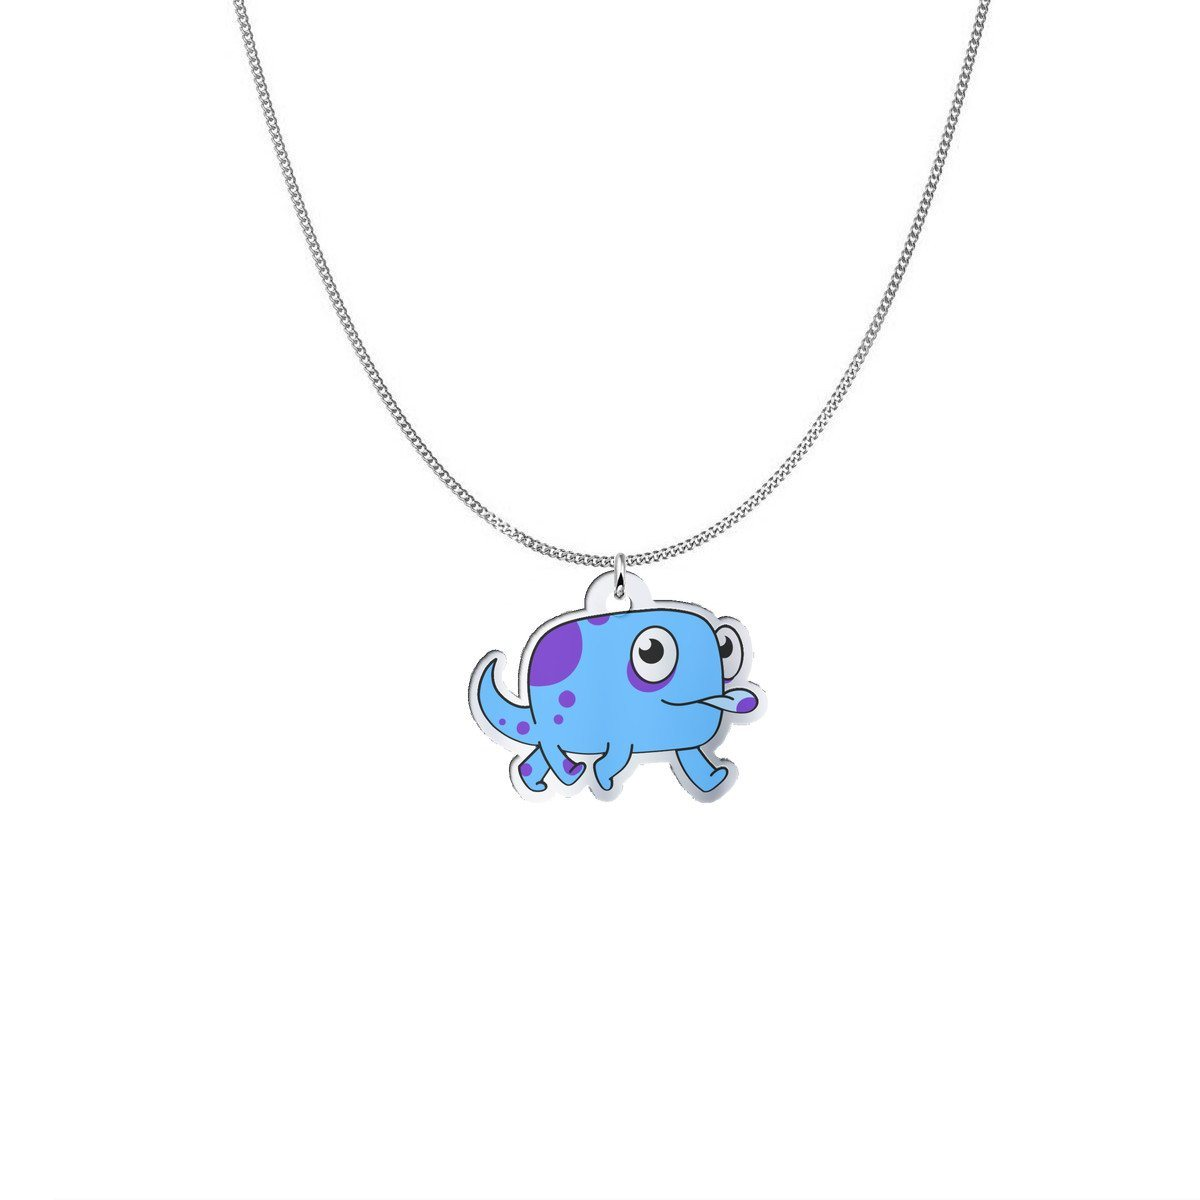 Pendant - Hashi The Hashimoto's Disease Monster Silver Necklace